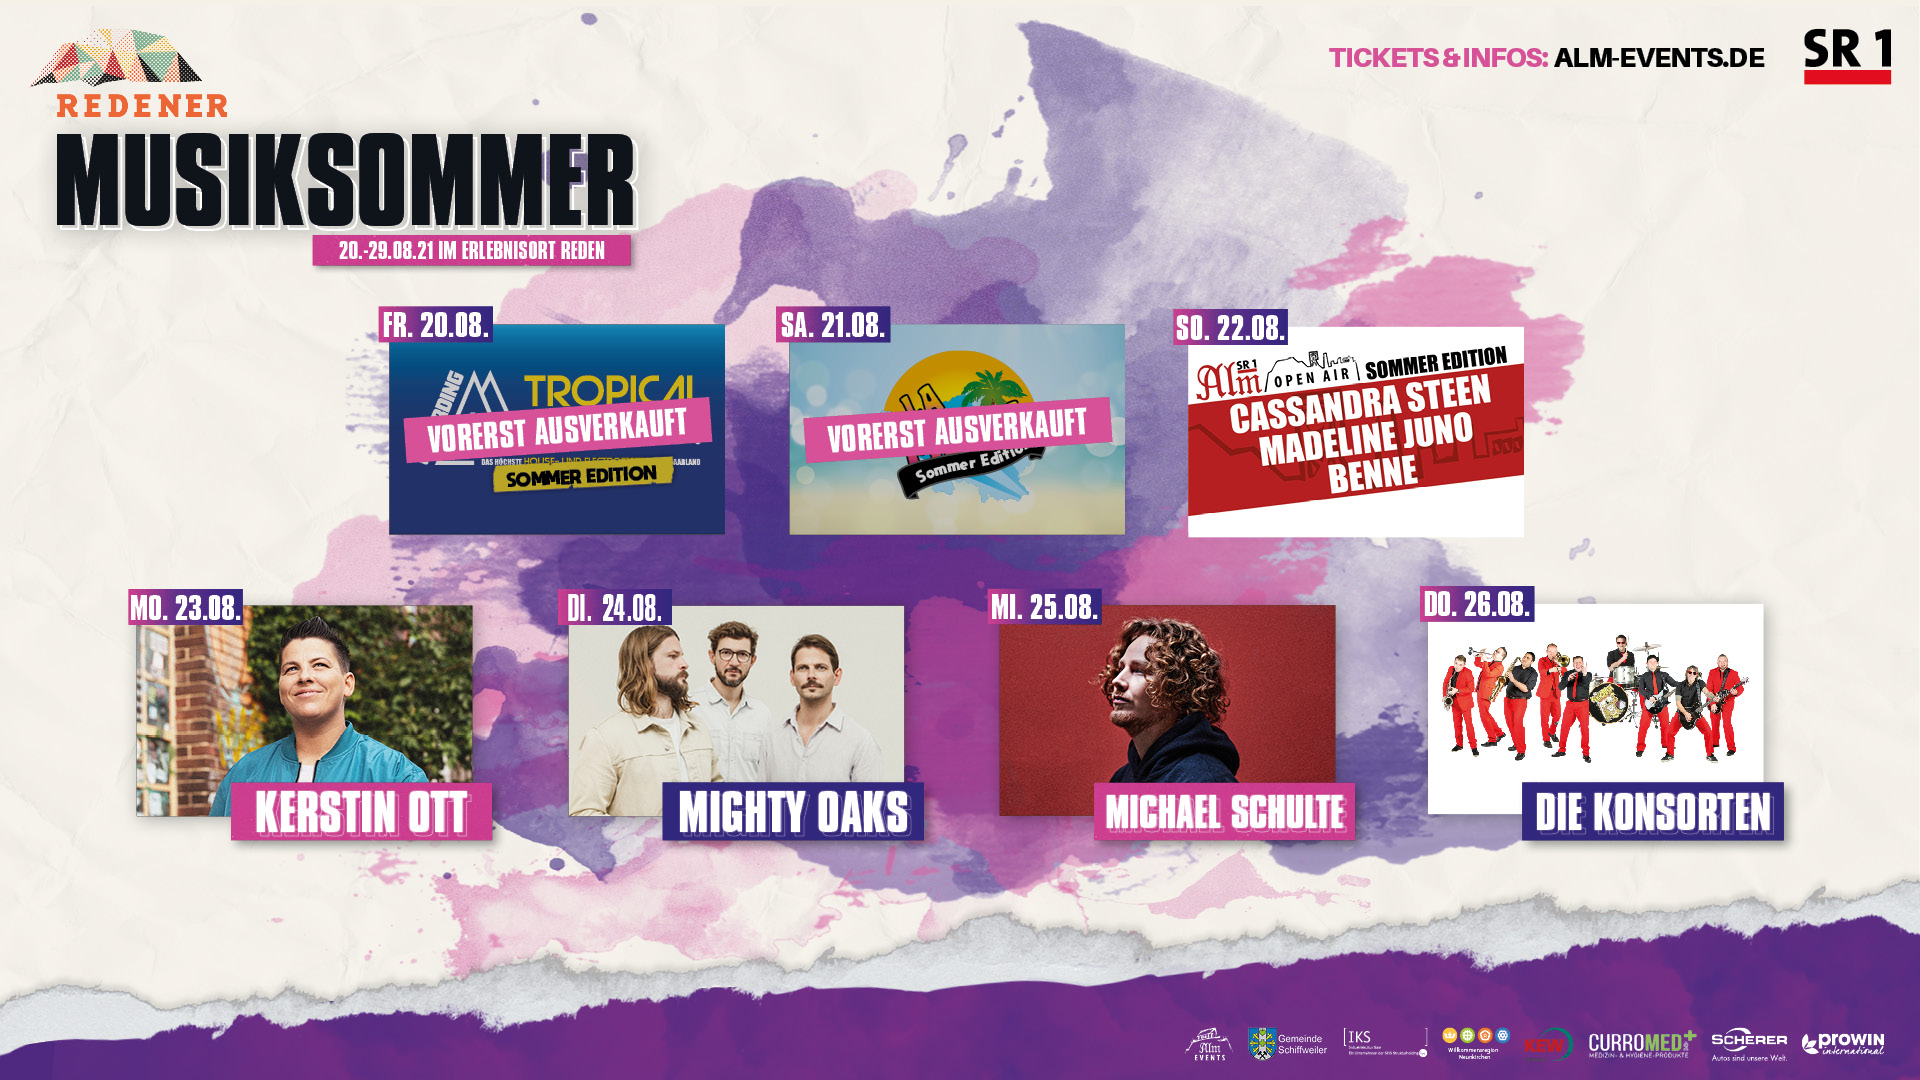 alm-events-redenermusiksommer-tropicalmountain-sommeredition